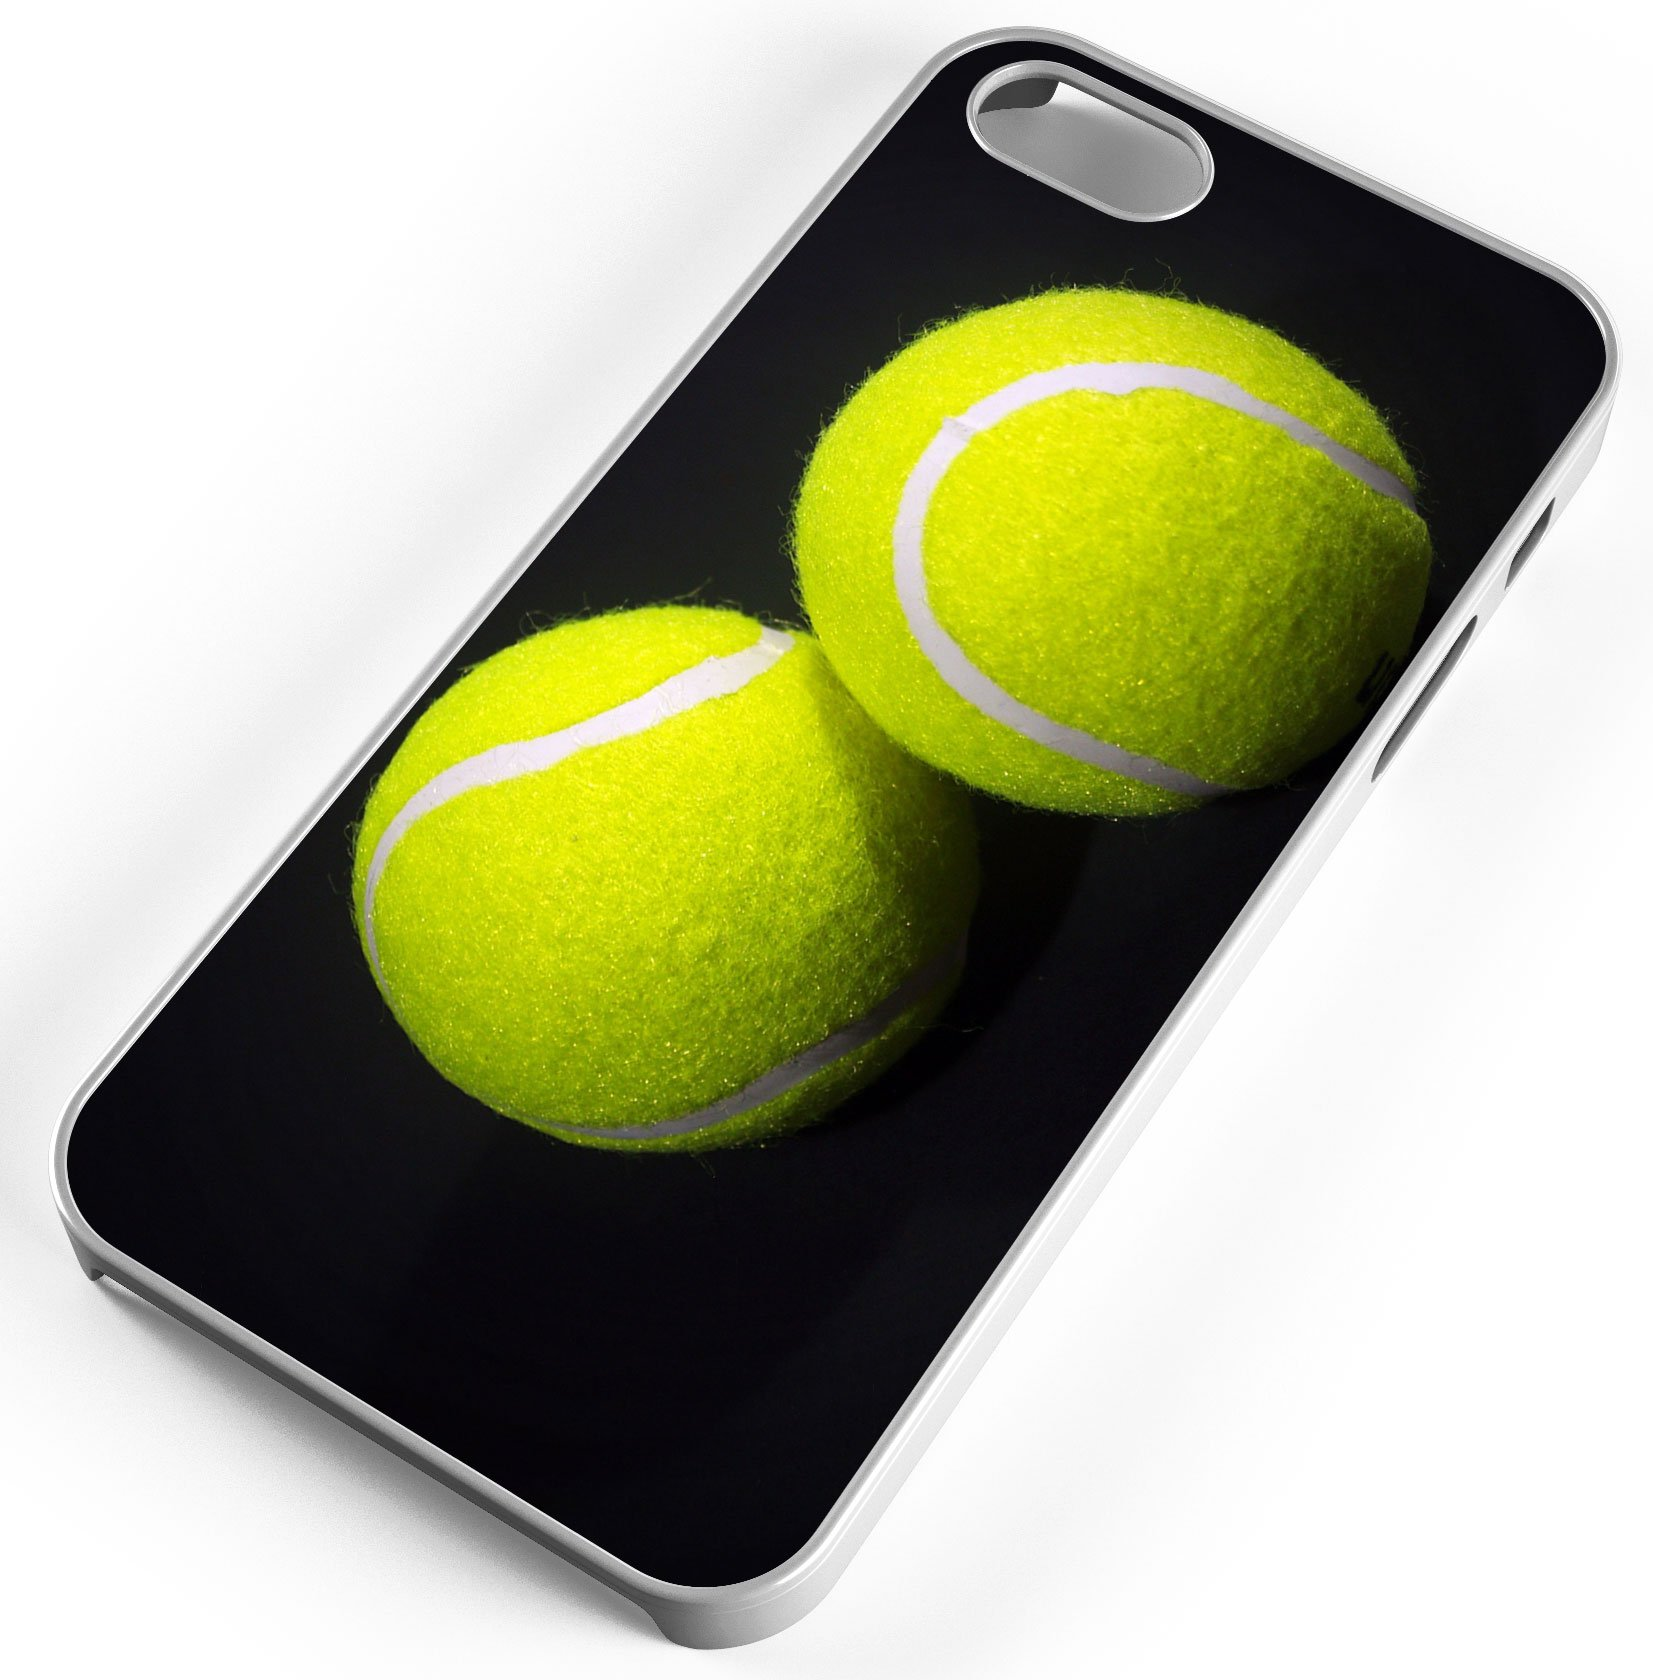 iPhone Case Fits Apple iPhone 8 PLUS 8+ Tennis Balls Clear Plastic